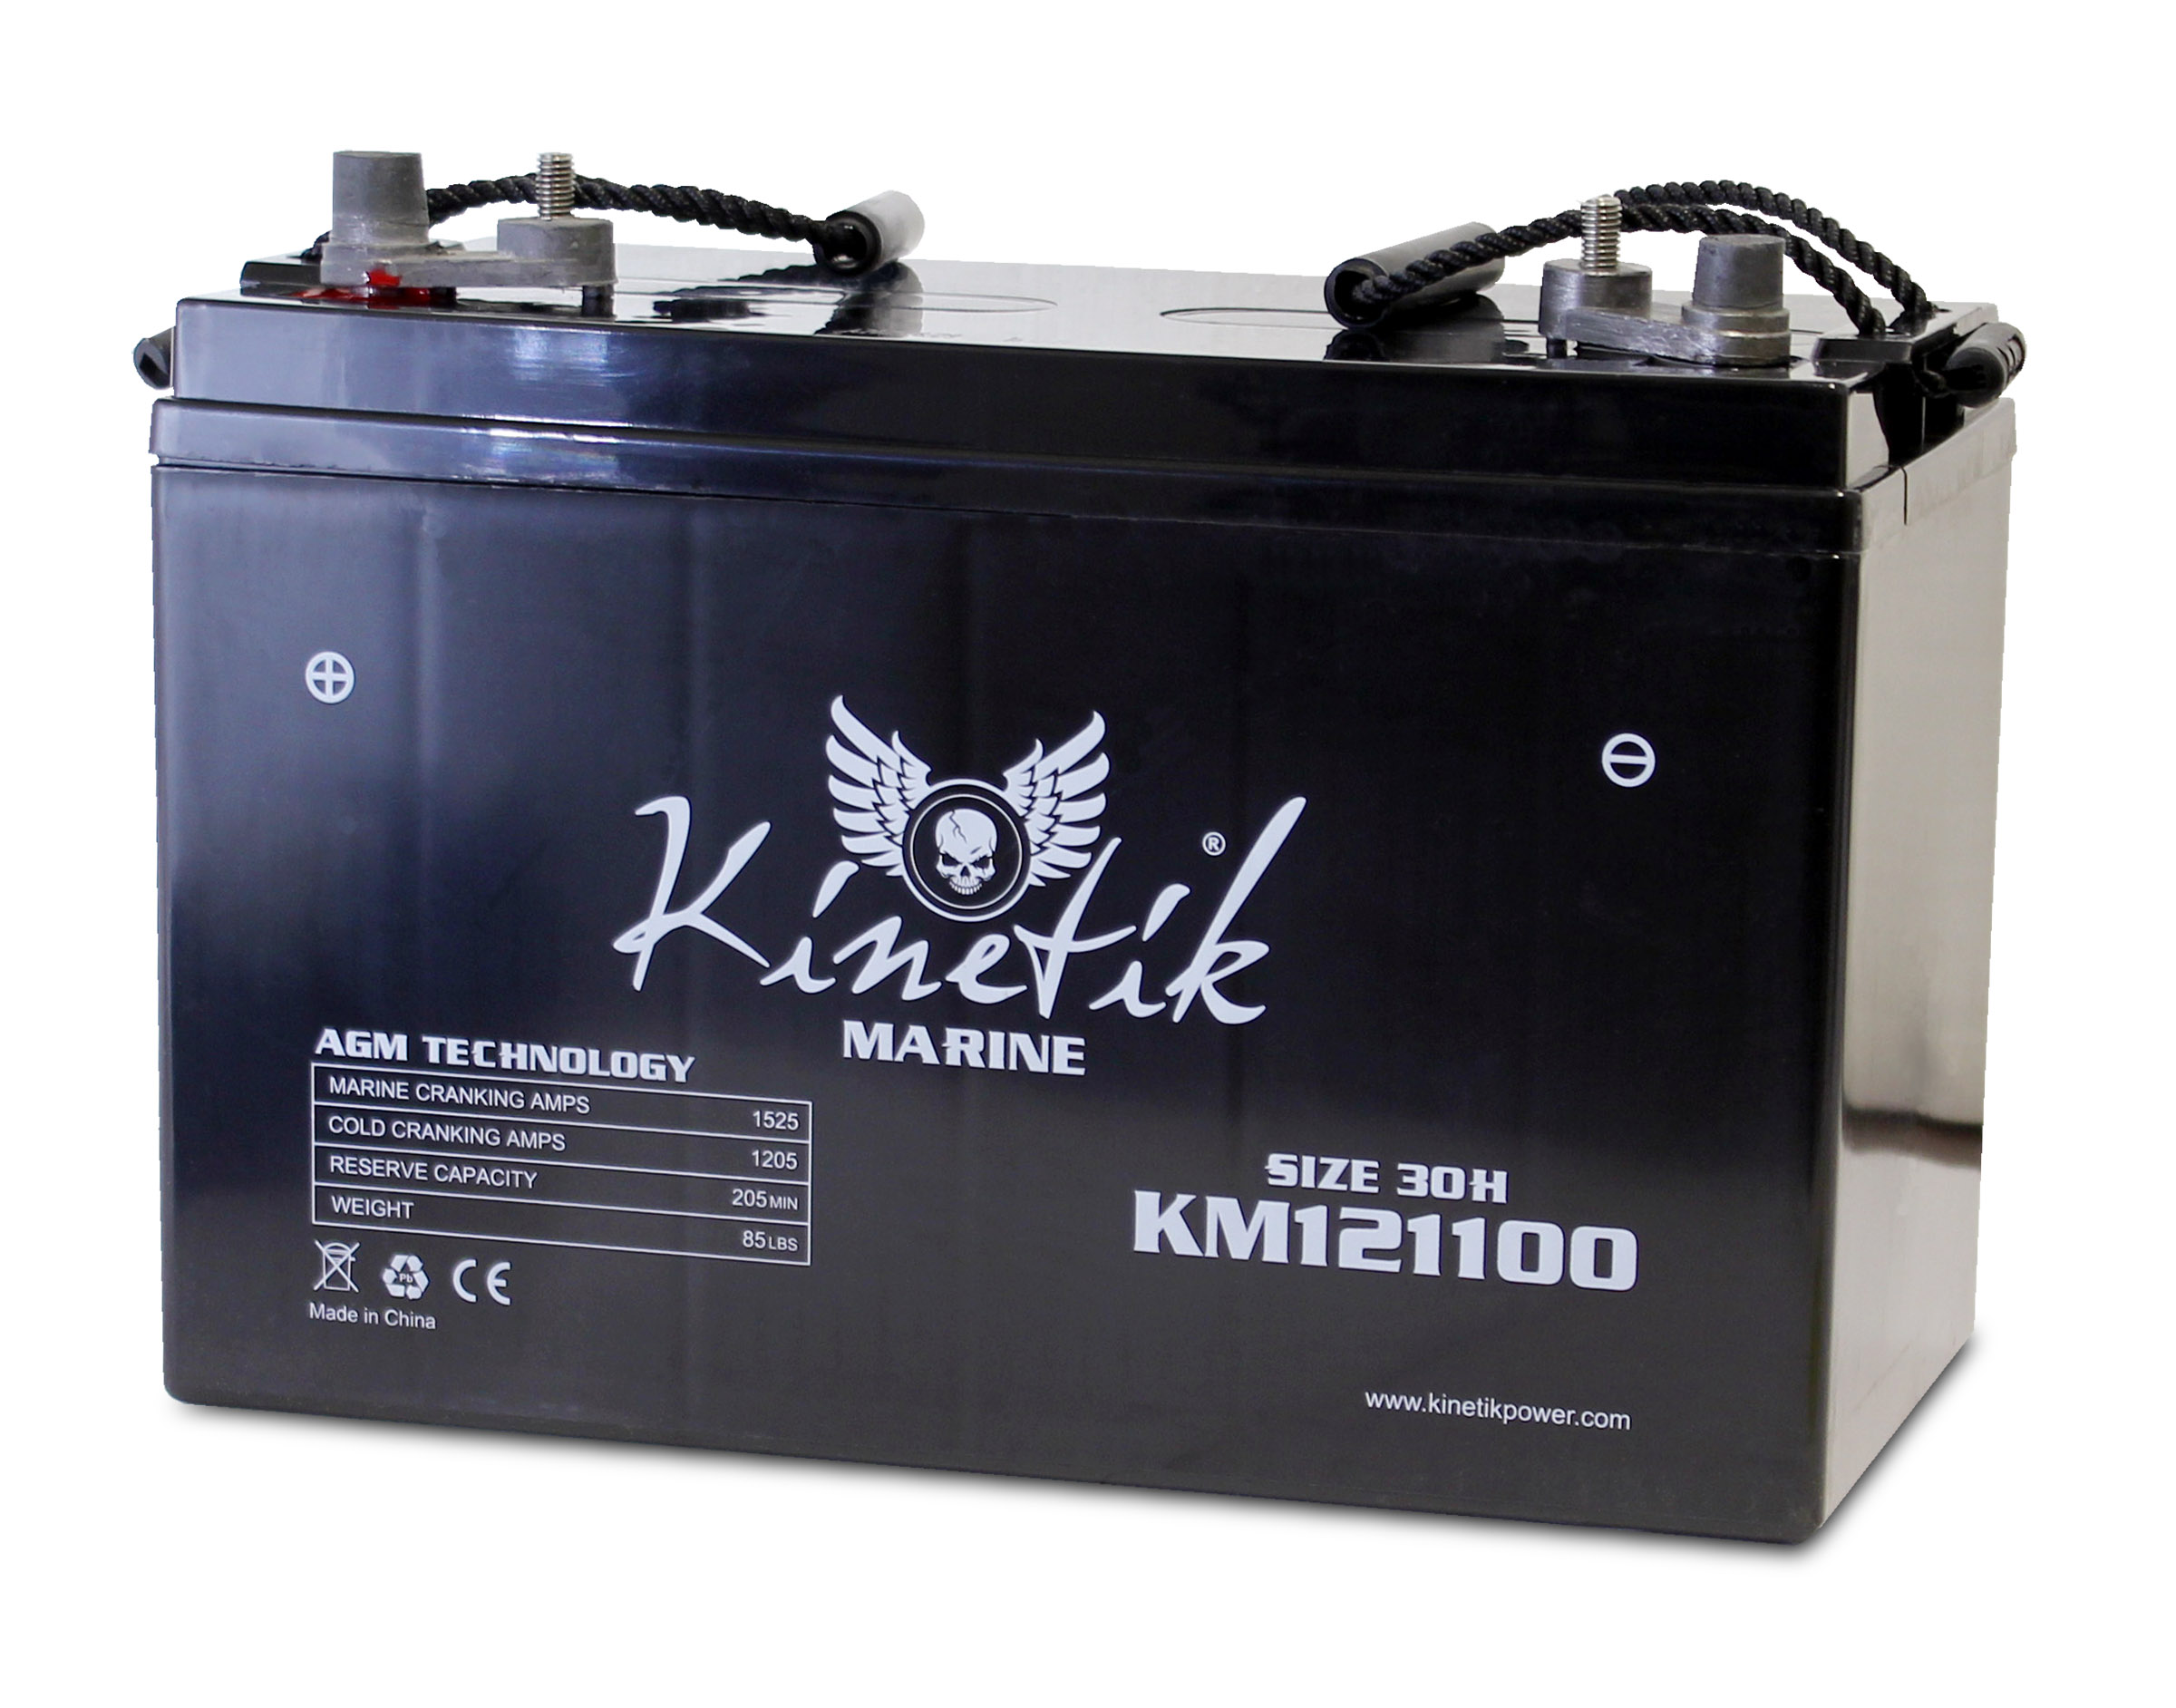 12V 110AH Group 30H Battery for Aquawatt Electric Outboard